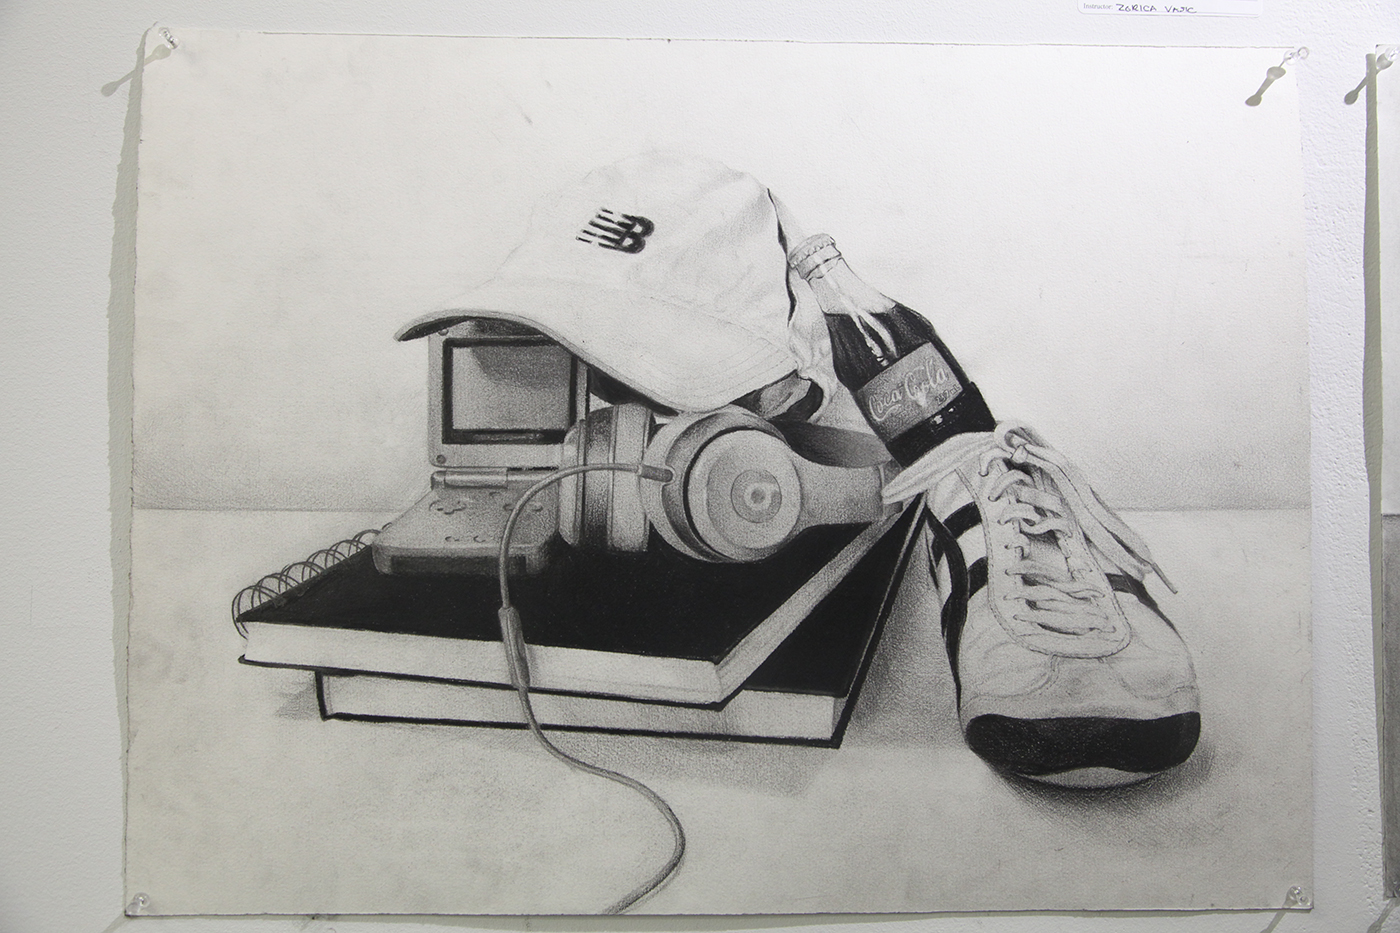 Still life drawing of shoes, books and gadgets. By Franky Lo